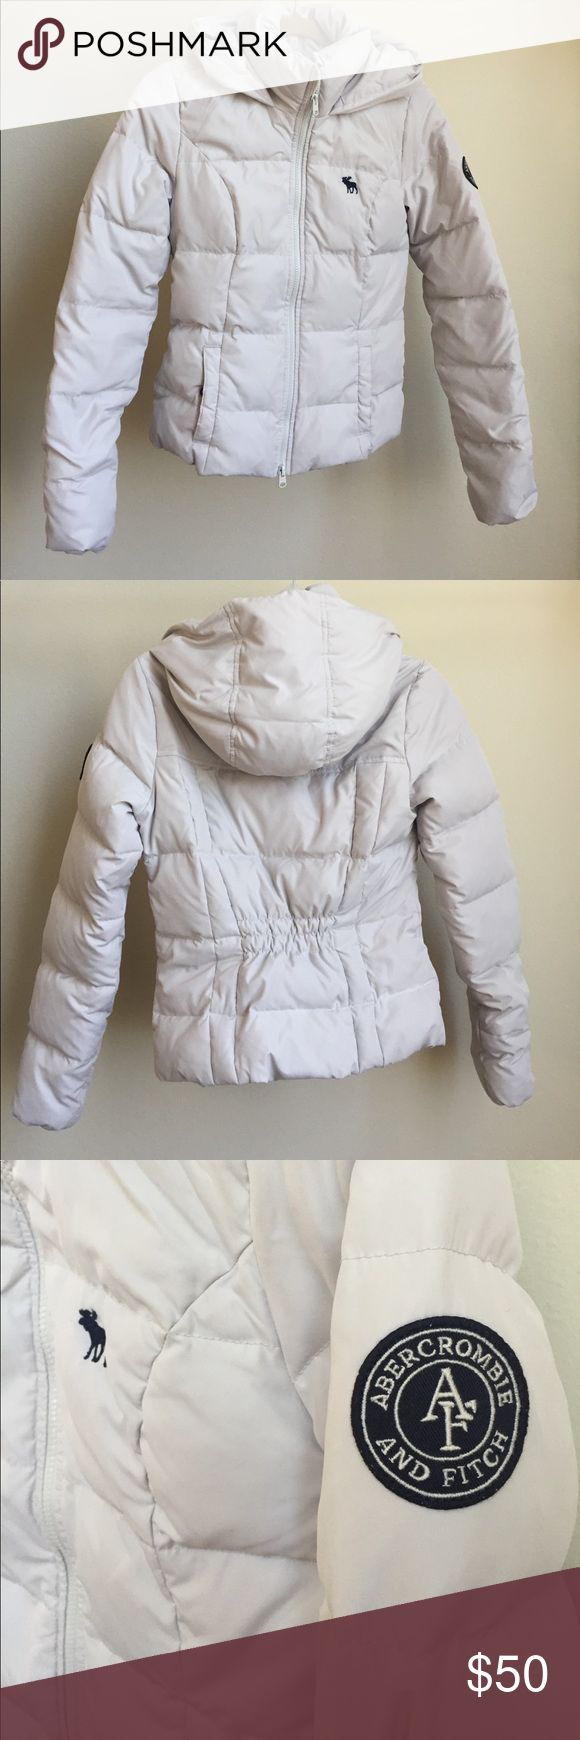 SUMMER DEAL ☀️ Abercrombie and Fitch light puffer A warm and lightweight Abercrombie and Fitch puffer jacket. It is a very flattering, slimming fit that hits at the waist. It has a hood and two pockets at the front, and logos on the front and side sleeve. So great for winter coming up! In great condition. Abercrombie & Fitch Jackets & Coats Puffers